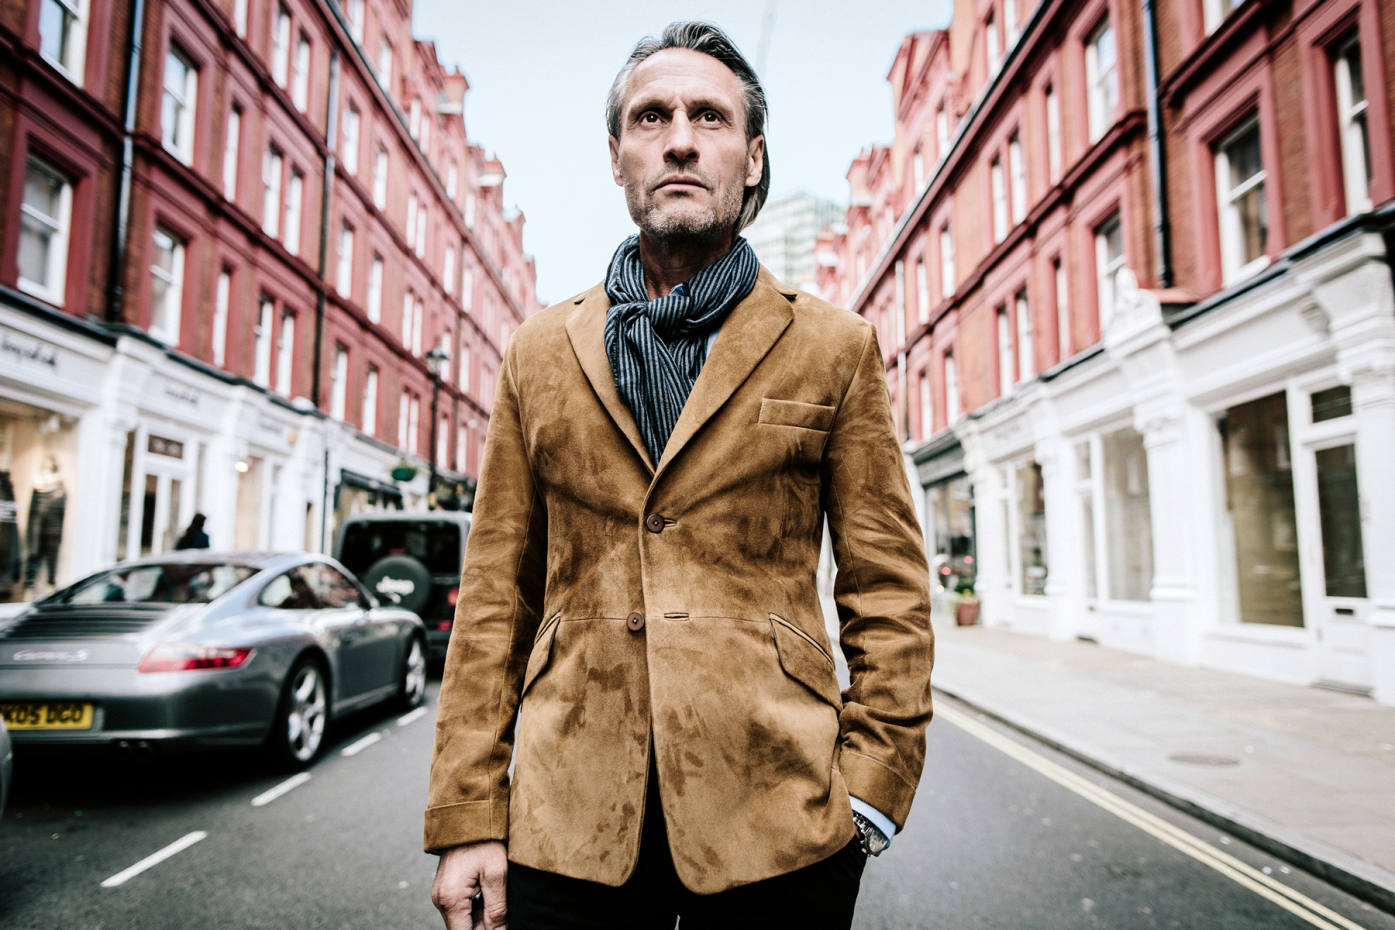 Bespoke suede jackets are the new smash hit in menswear